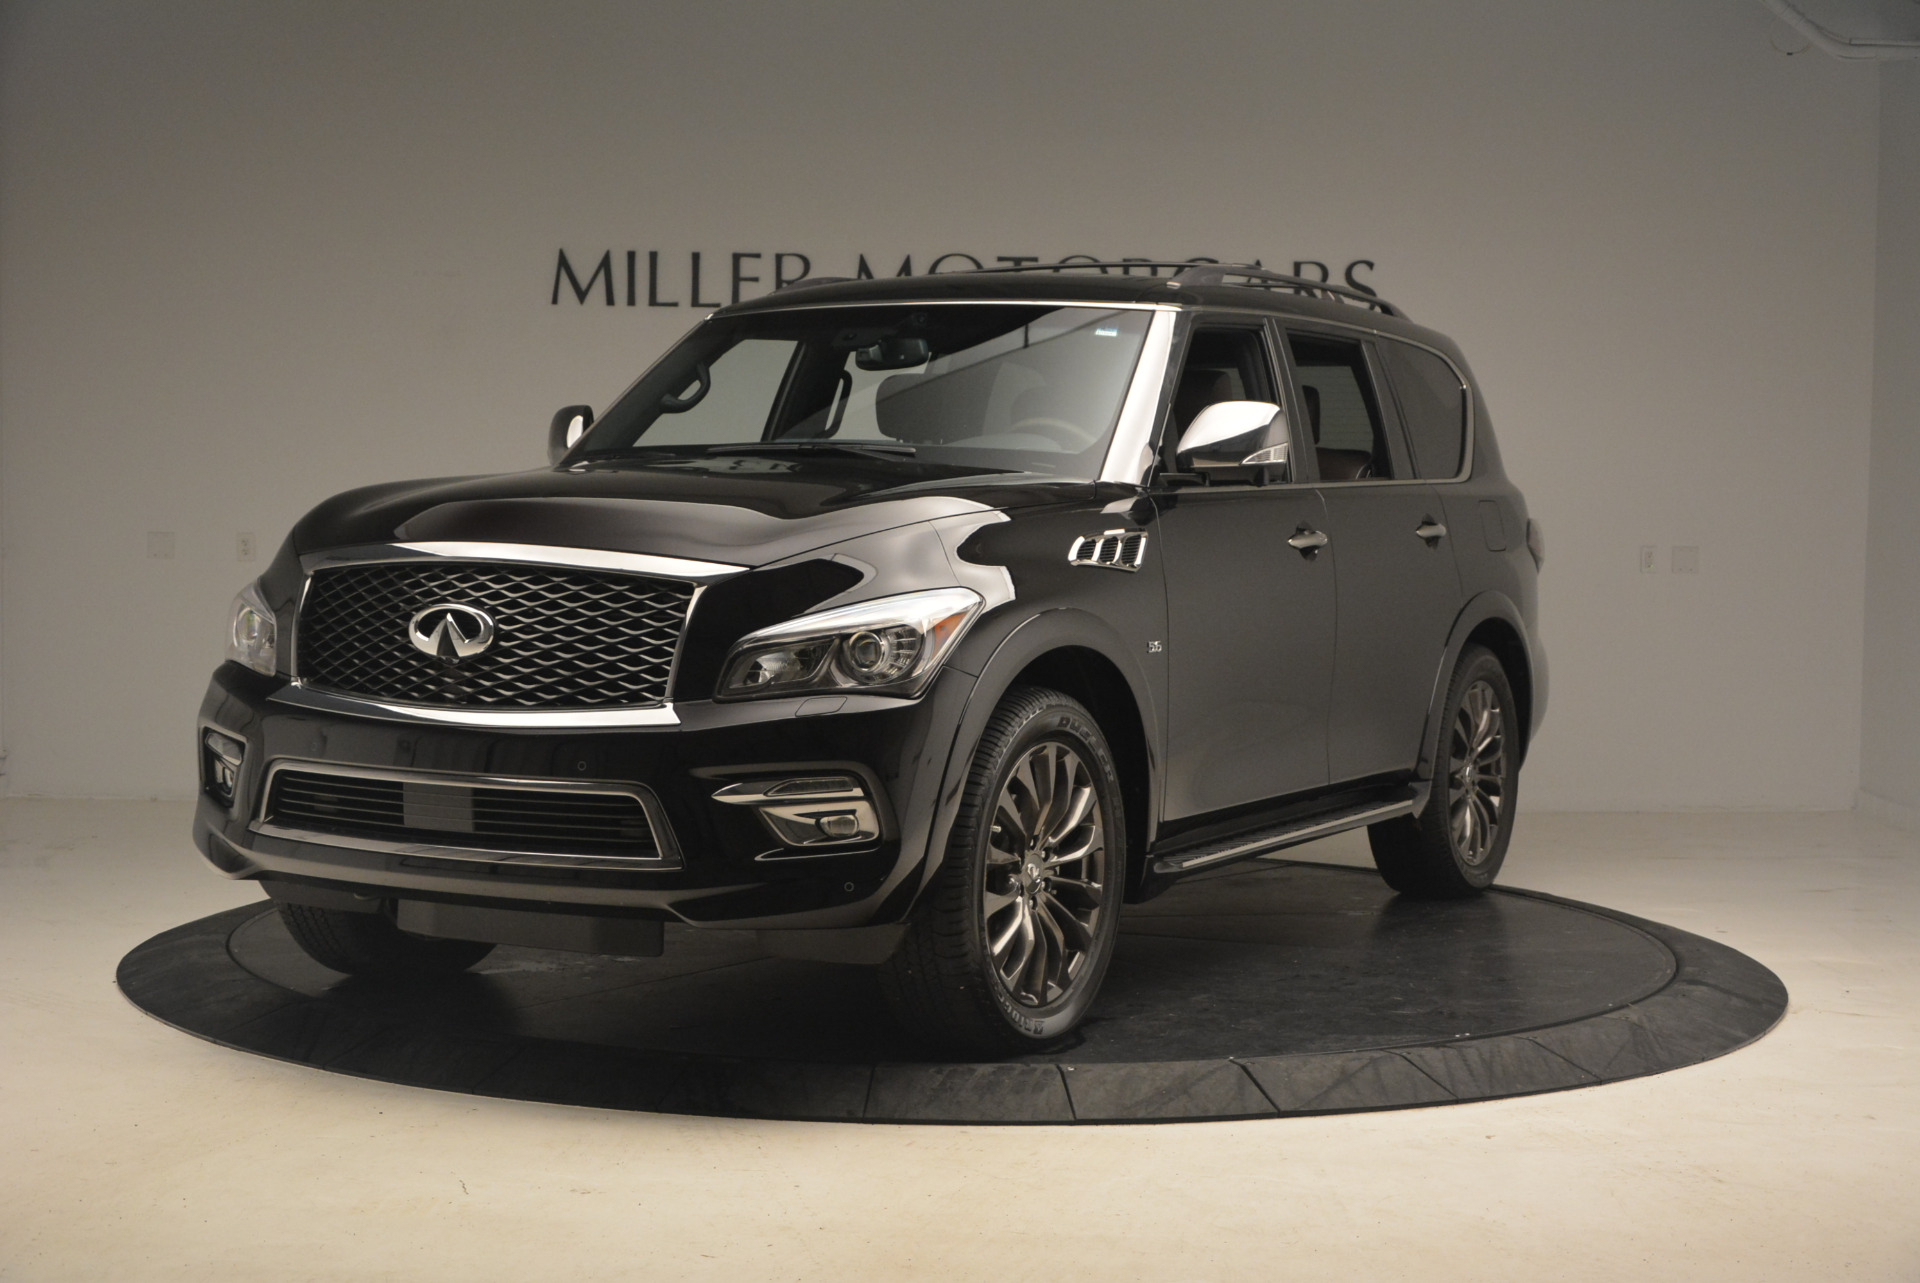 Used 2015 INFINITI QX80 Limited 4WD for sale Sold at Alfa Romeo of Greenwich in Greenwich CT 06830 1